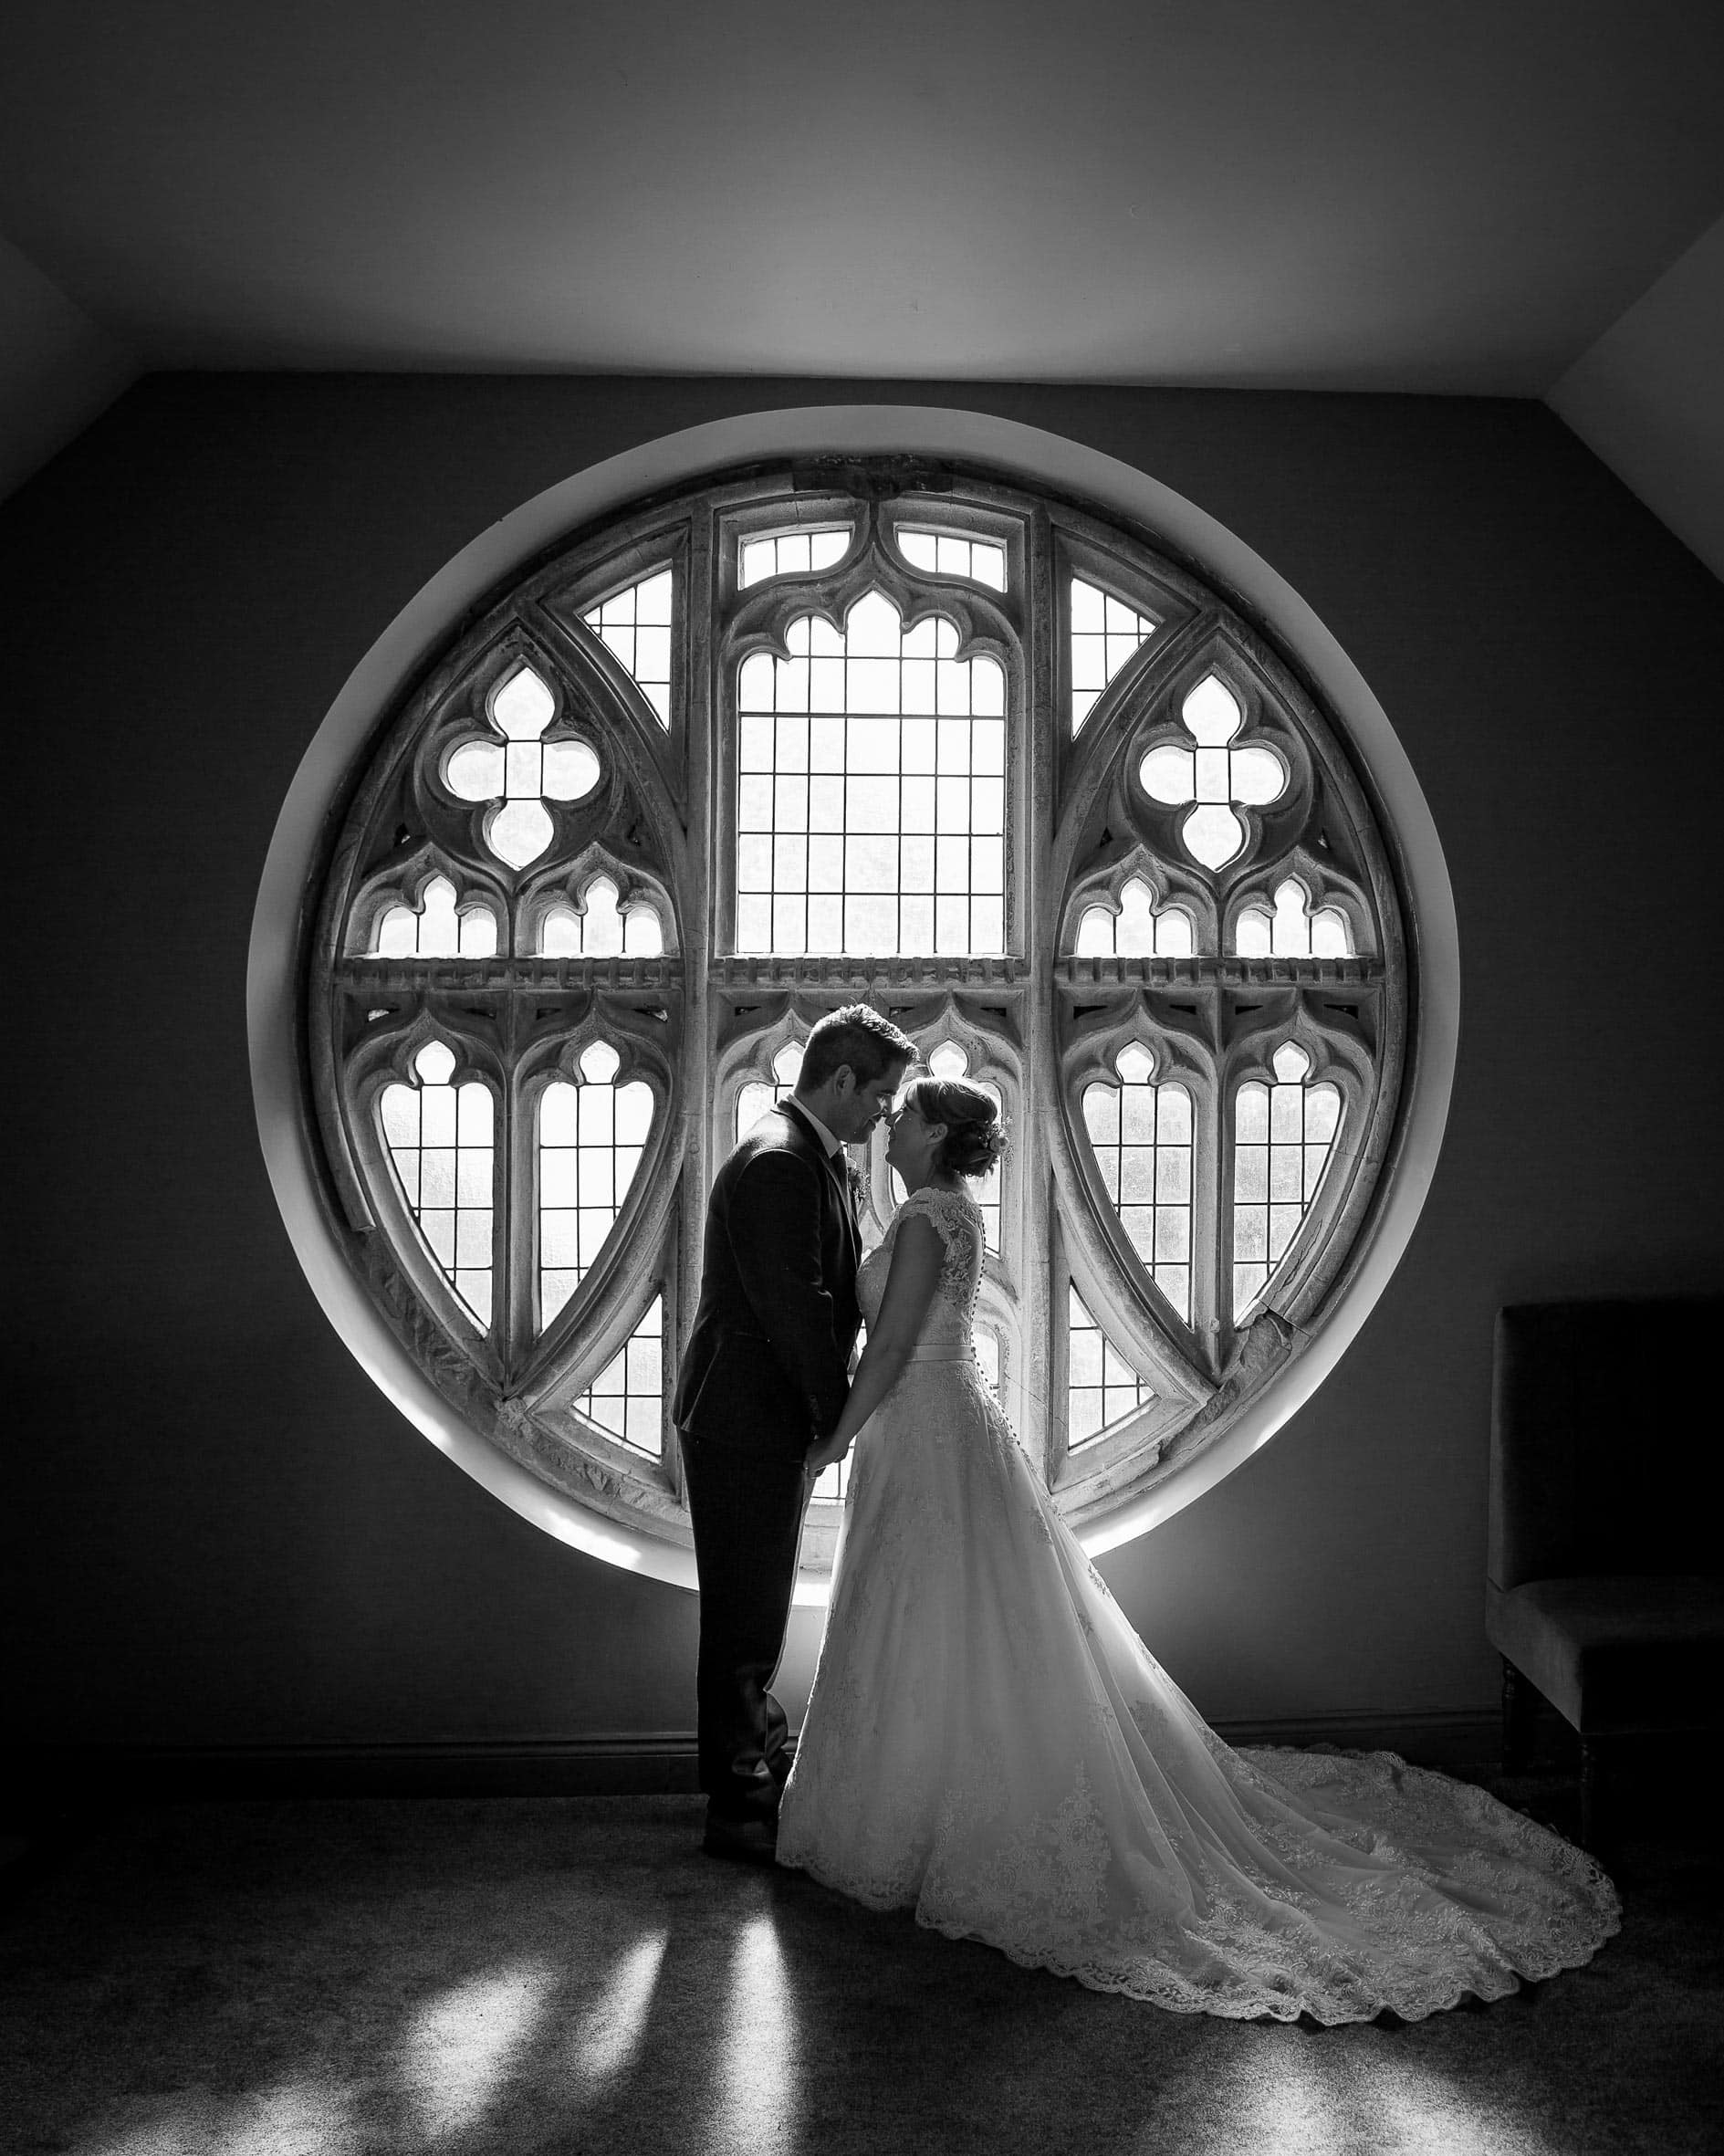 Black and white wedding photo of bride and groom